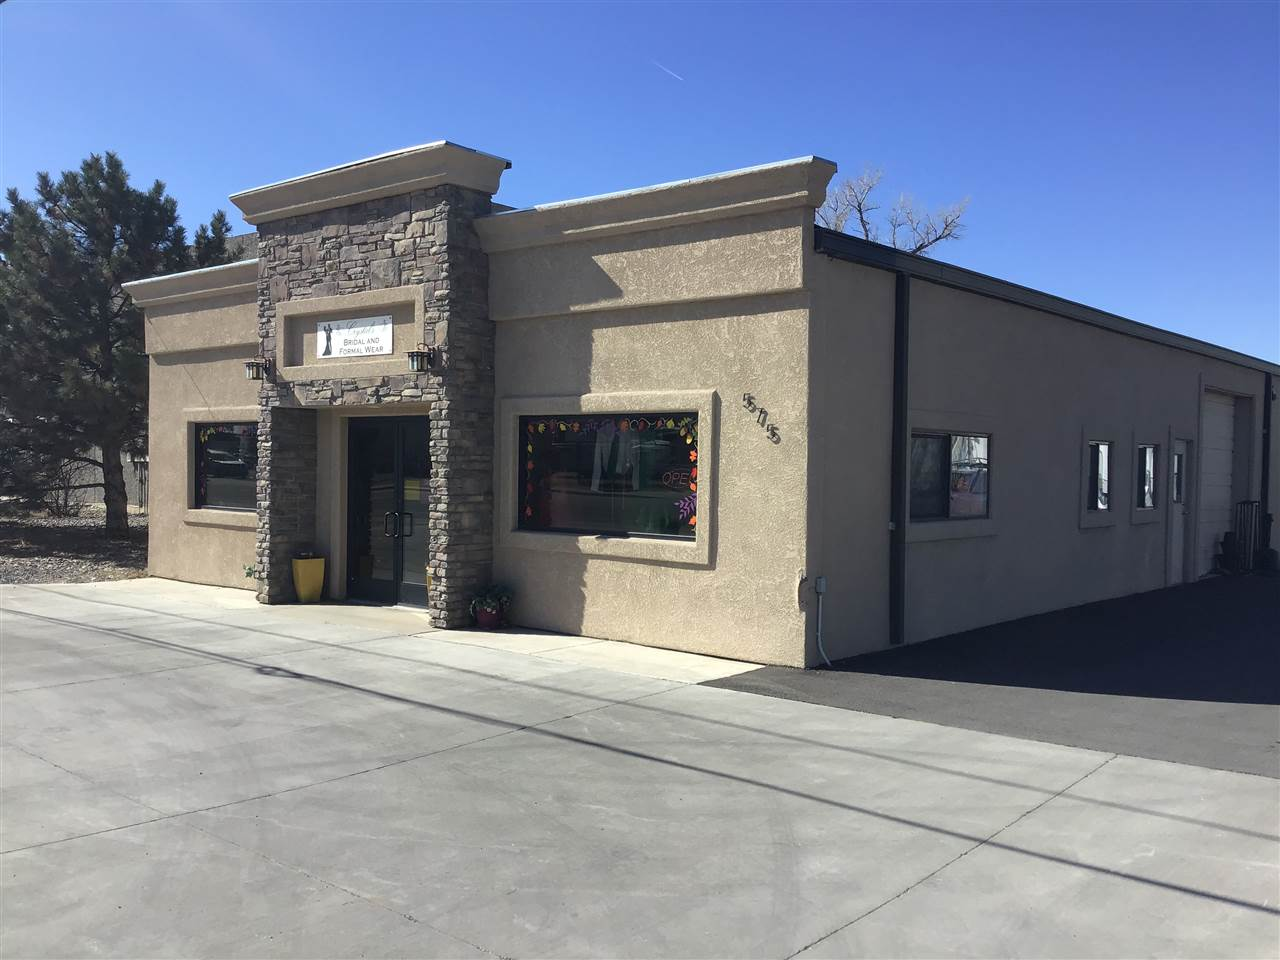 575 25 Road, Grand Junction, CO 81505